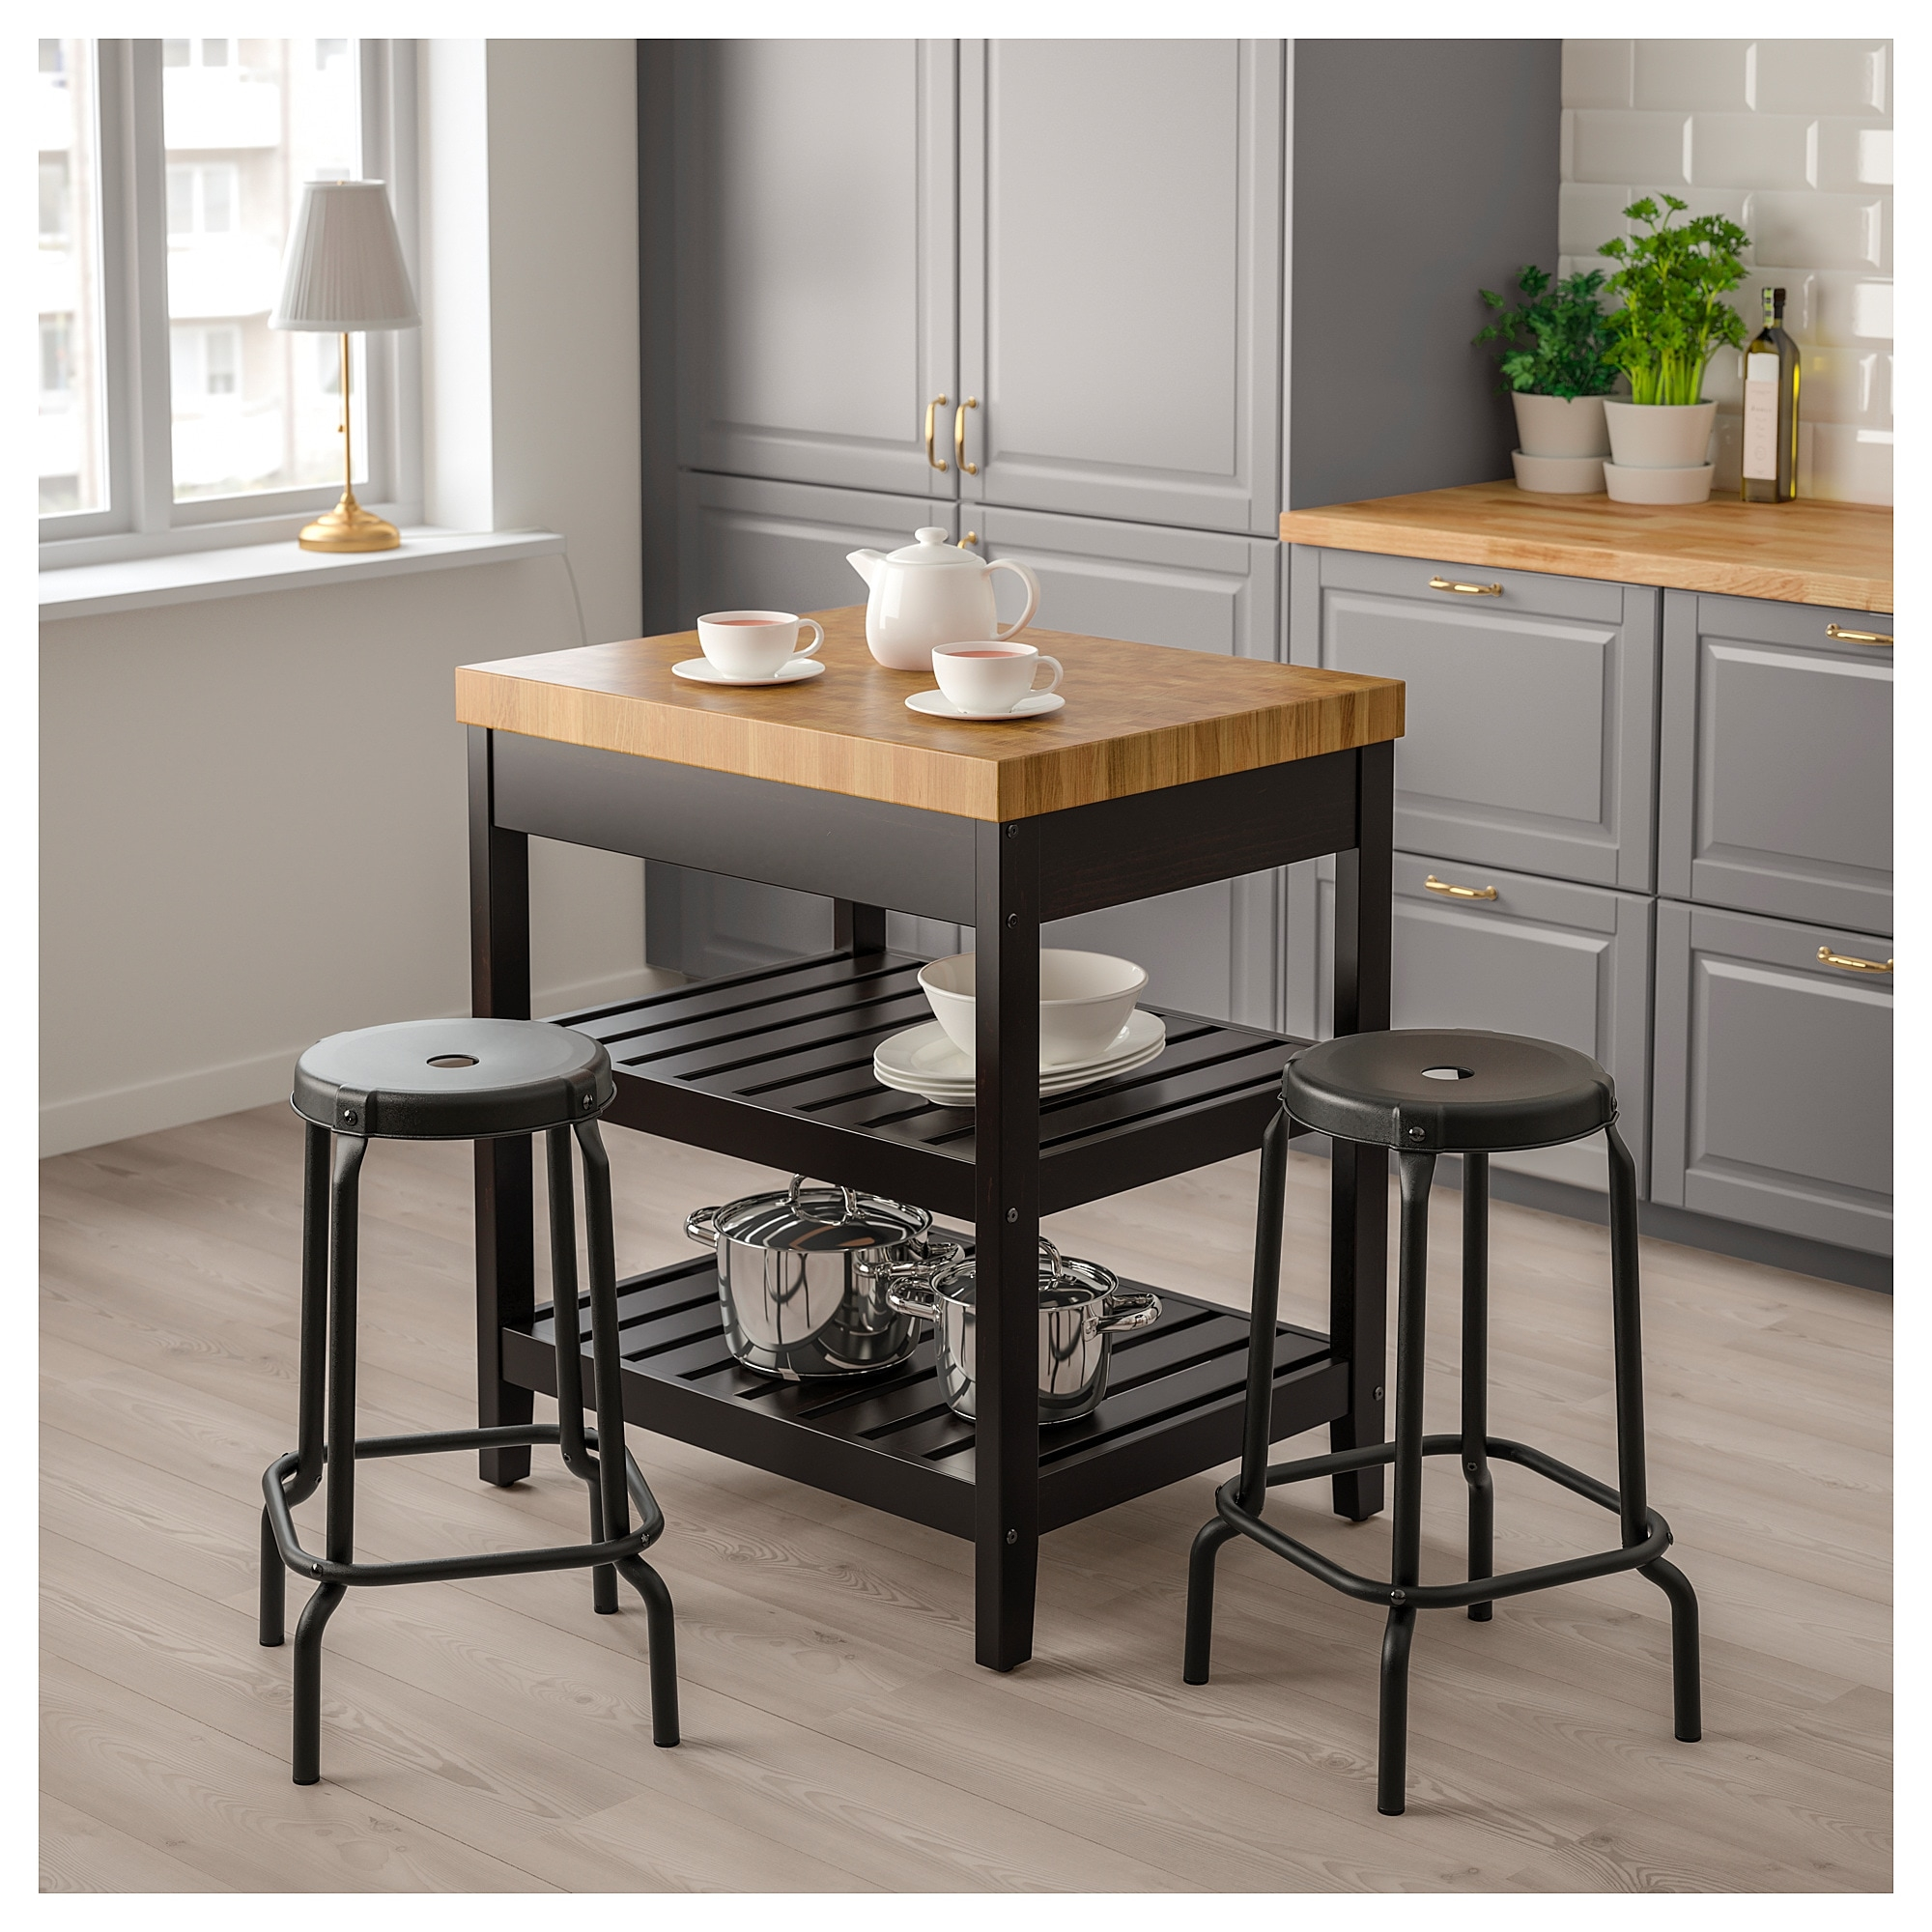 50 Ikea Kitchen Islands You Ll Love In